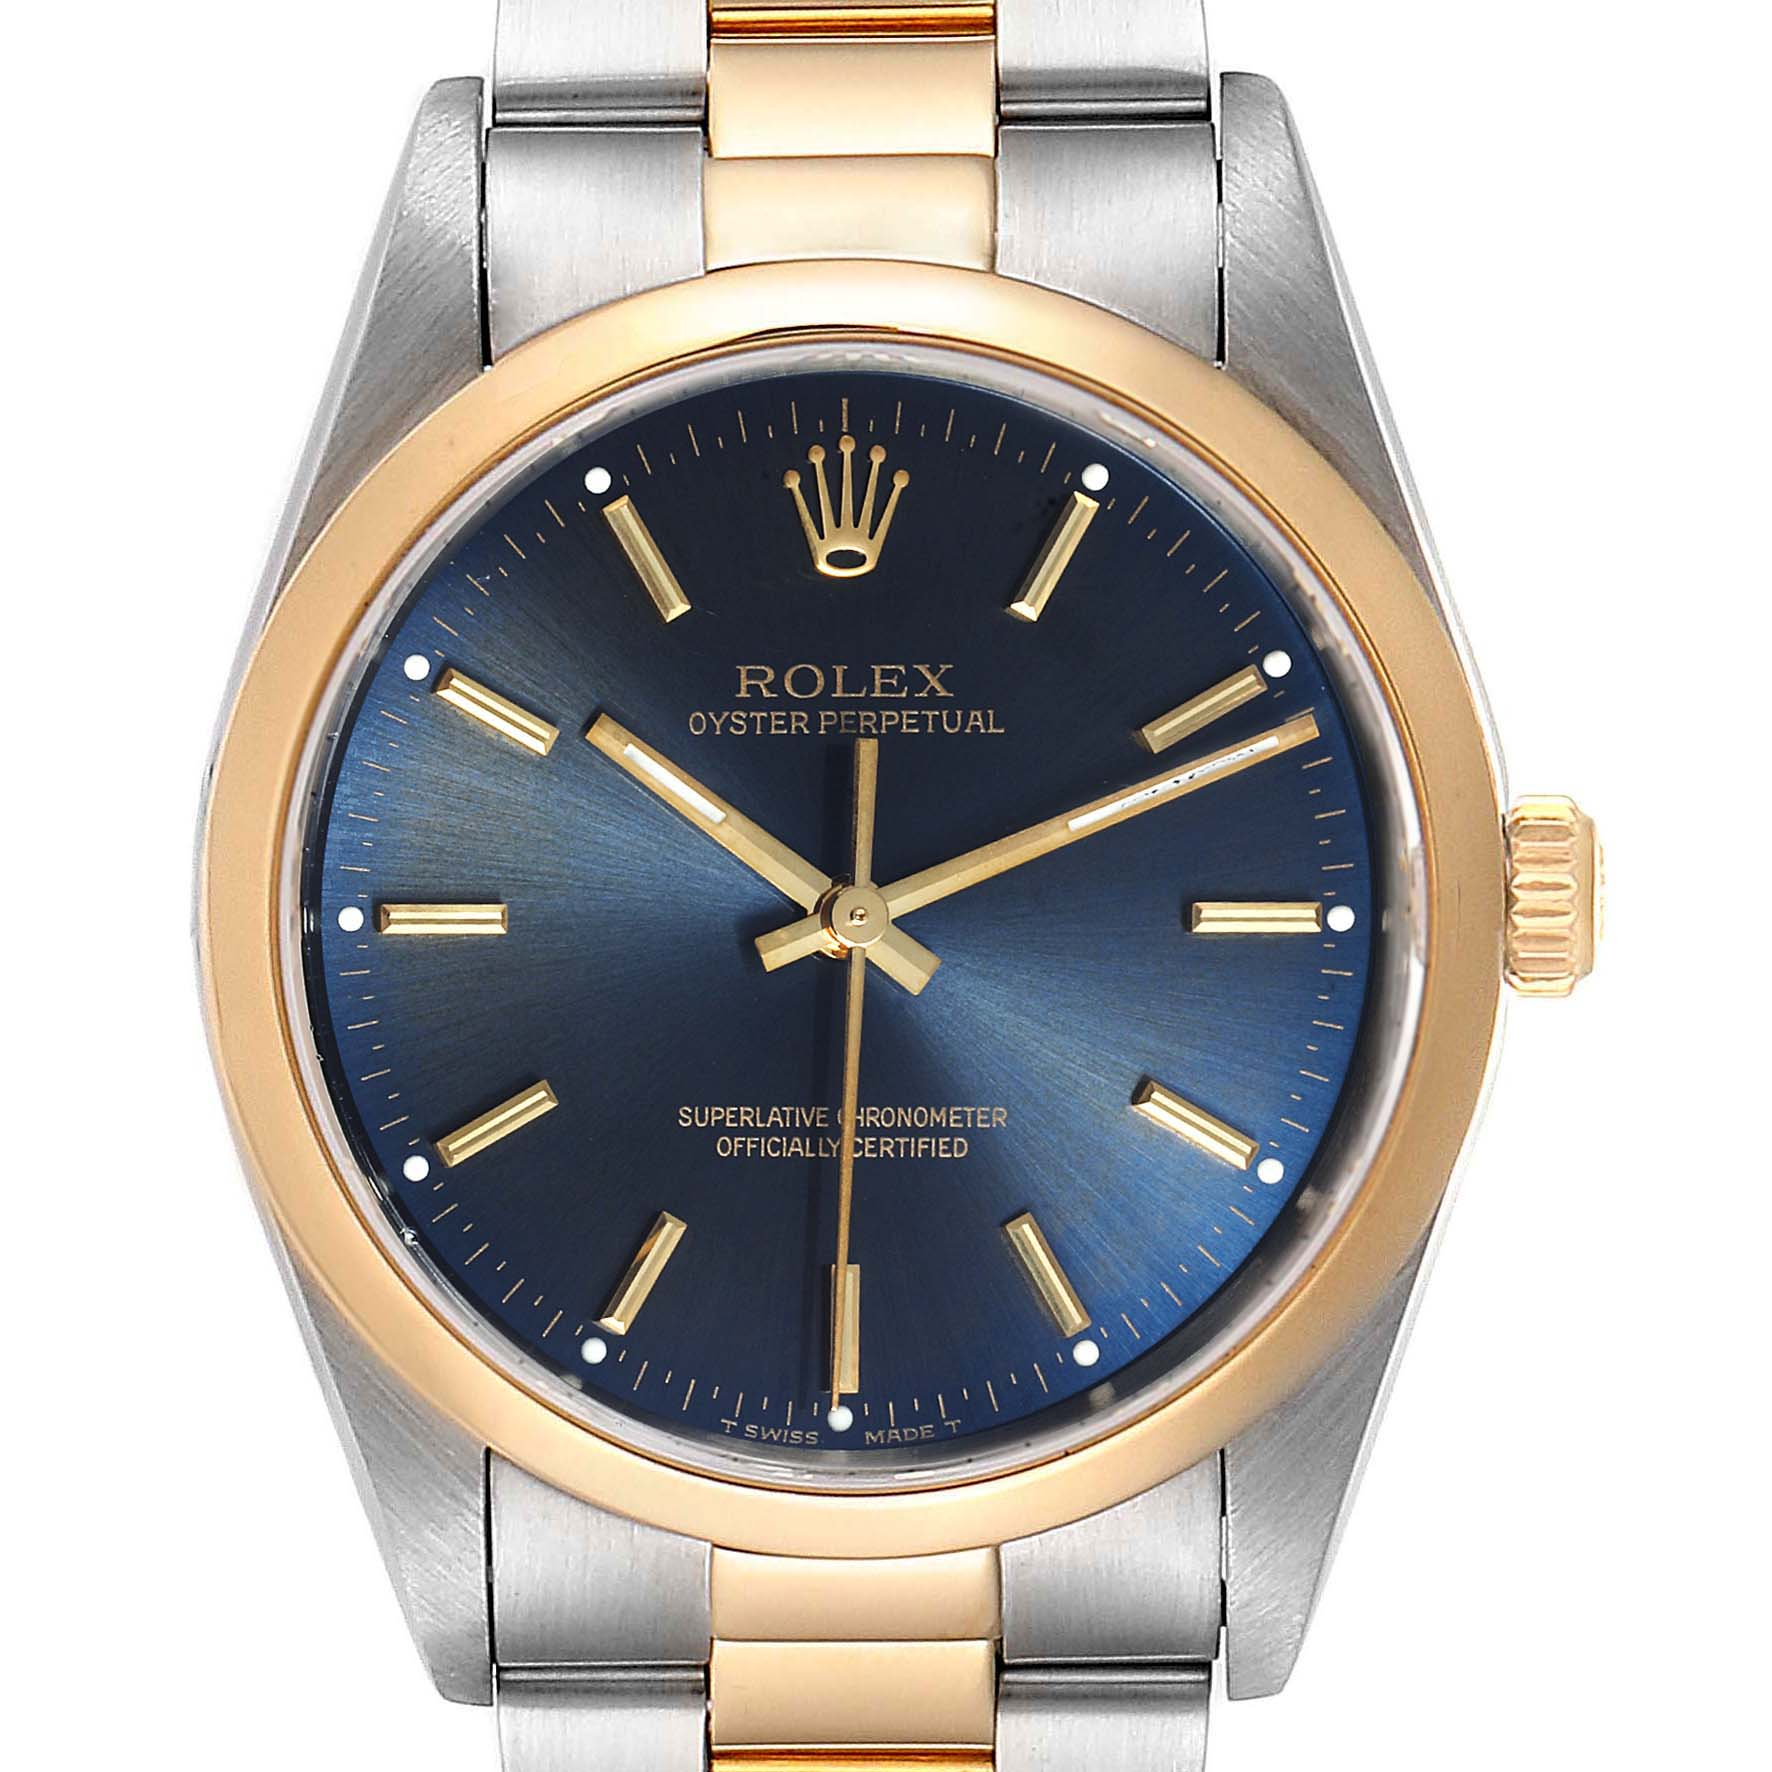 Rolex Oyster Perpetual Steel Yellow Gold Mens Watch 14203 Box Papers